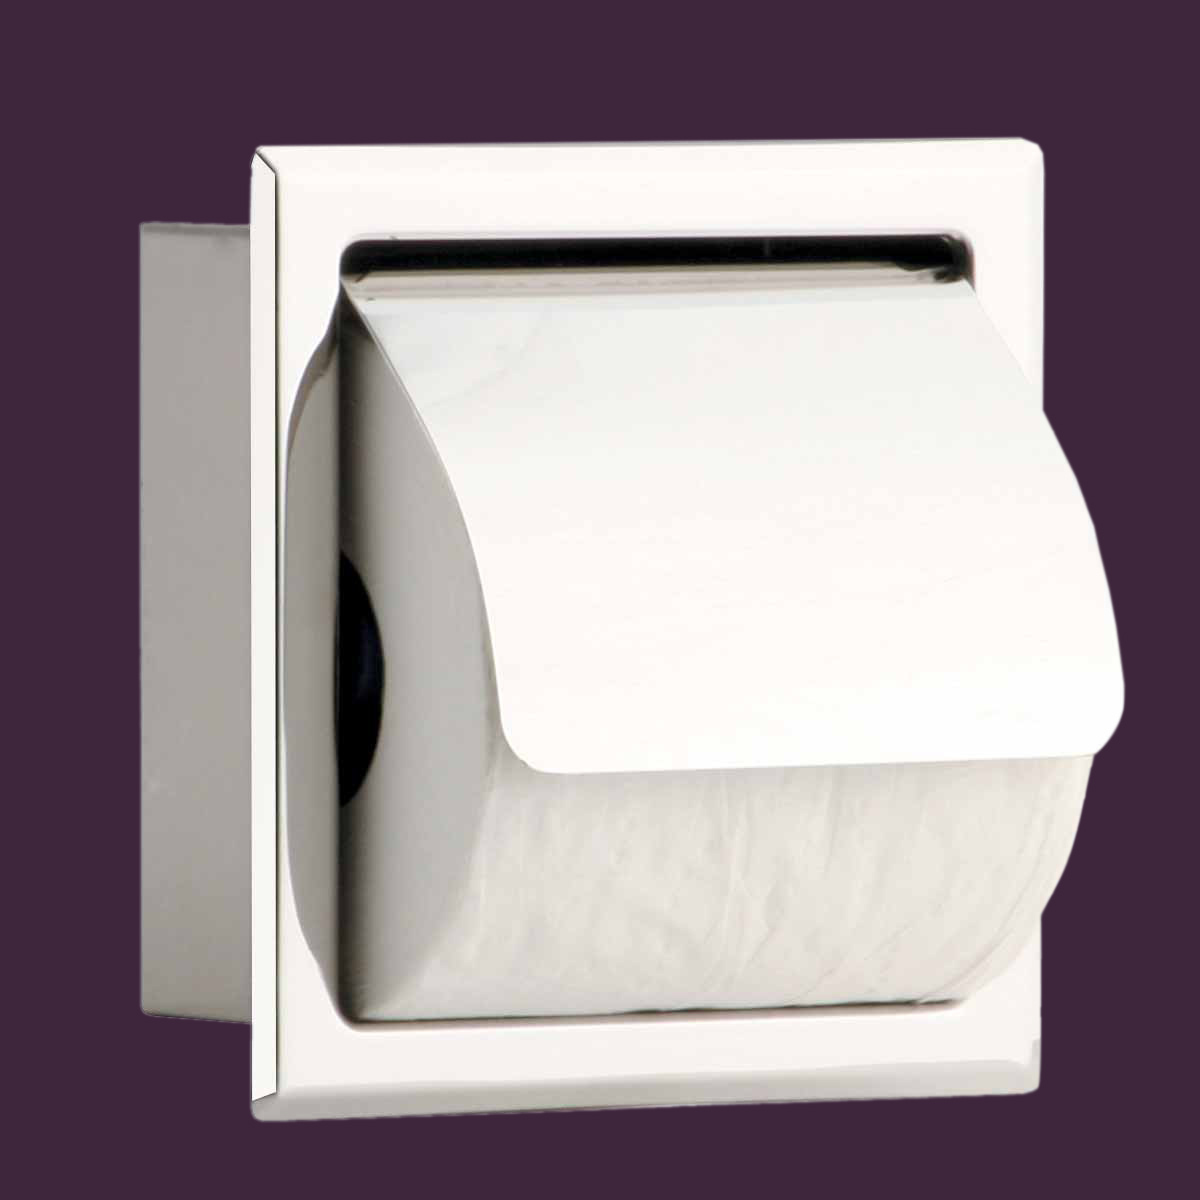 Recessed Toilet Paper Tissue Holder Bright Stainless Steel